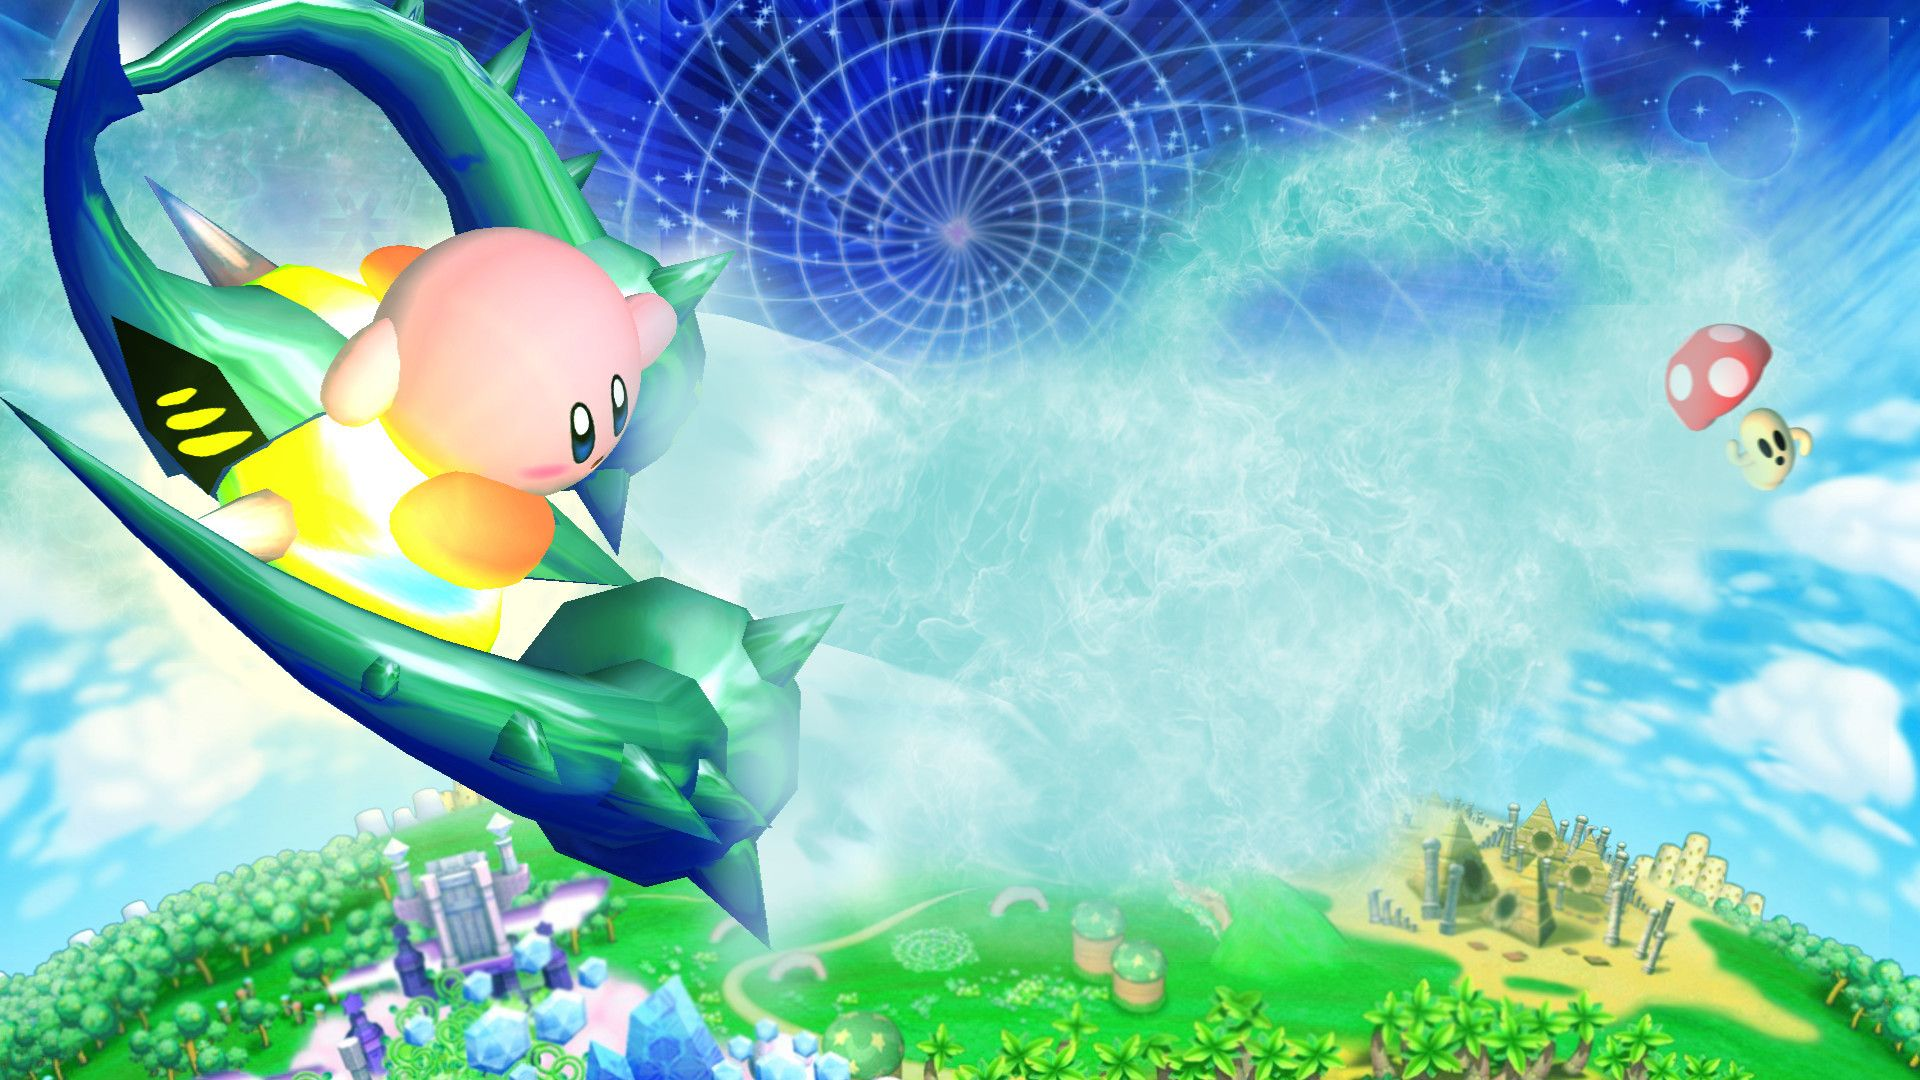 Kirby download free wallpaper image search